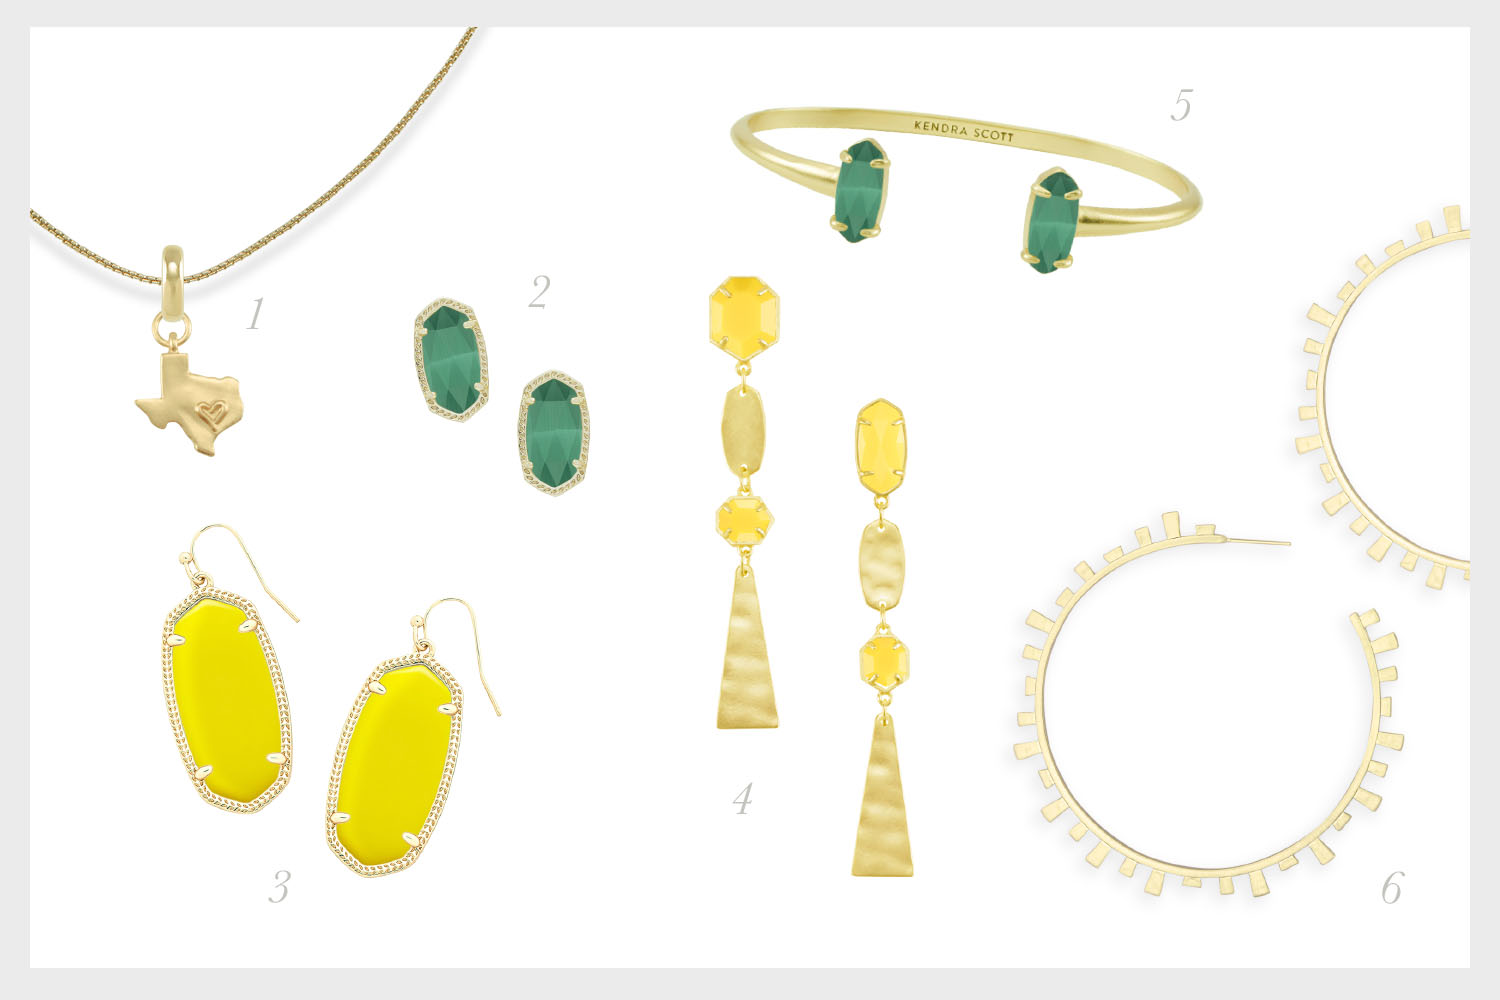 1.    State of Texas Charm with Thin Adjustable Chain Necklace in Gold   , 2.    Ellie Gold Stud Earrings in Emerald Cat's Eye   , 3.    Elle Gold Drop Earrings in Yellow   , 4.    Nadia Gold Statement Earrings in Yellow   , 5.    Edie Gold Cuff Bracelet in Emerald Cat's Eye   , 6.    Lynne Hoop Earrings in Gold